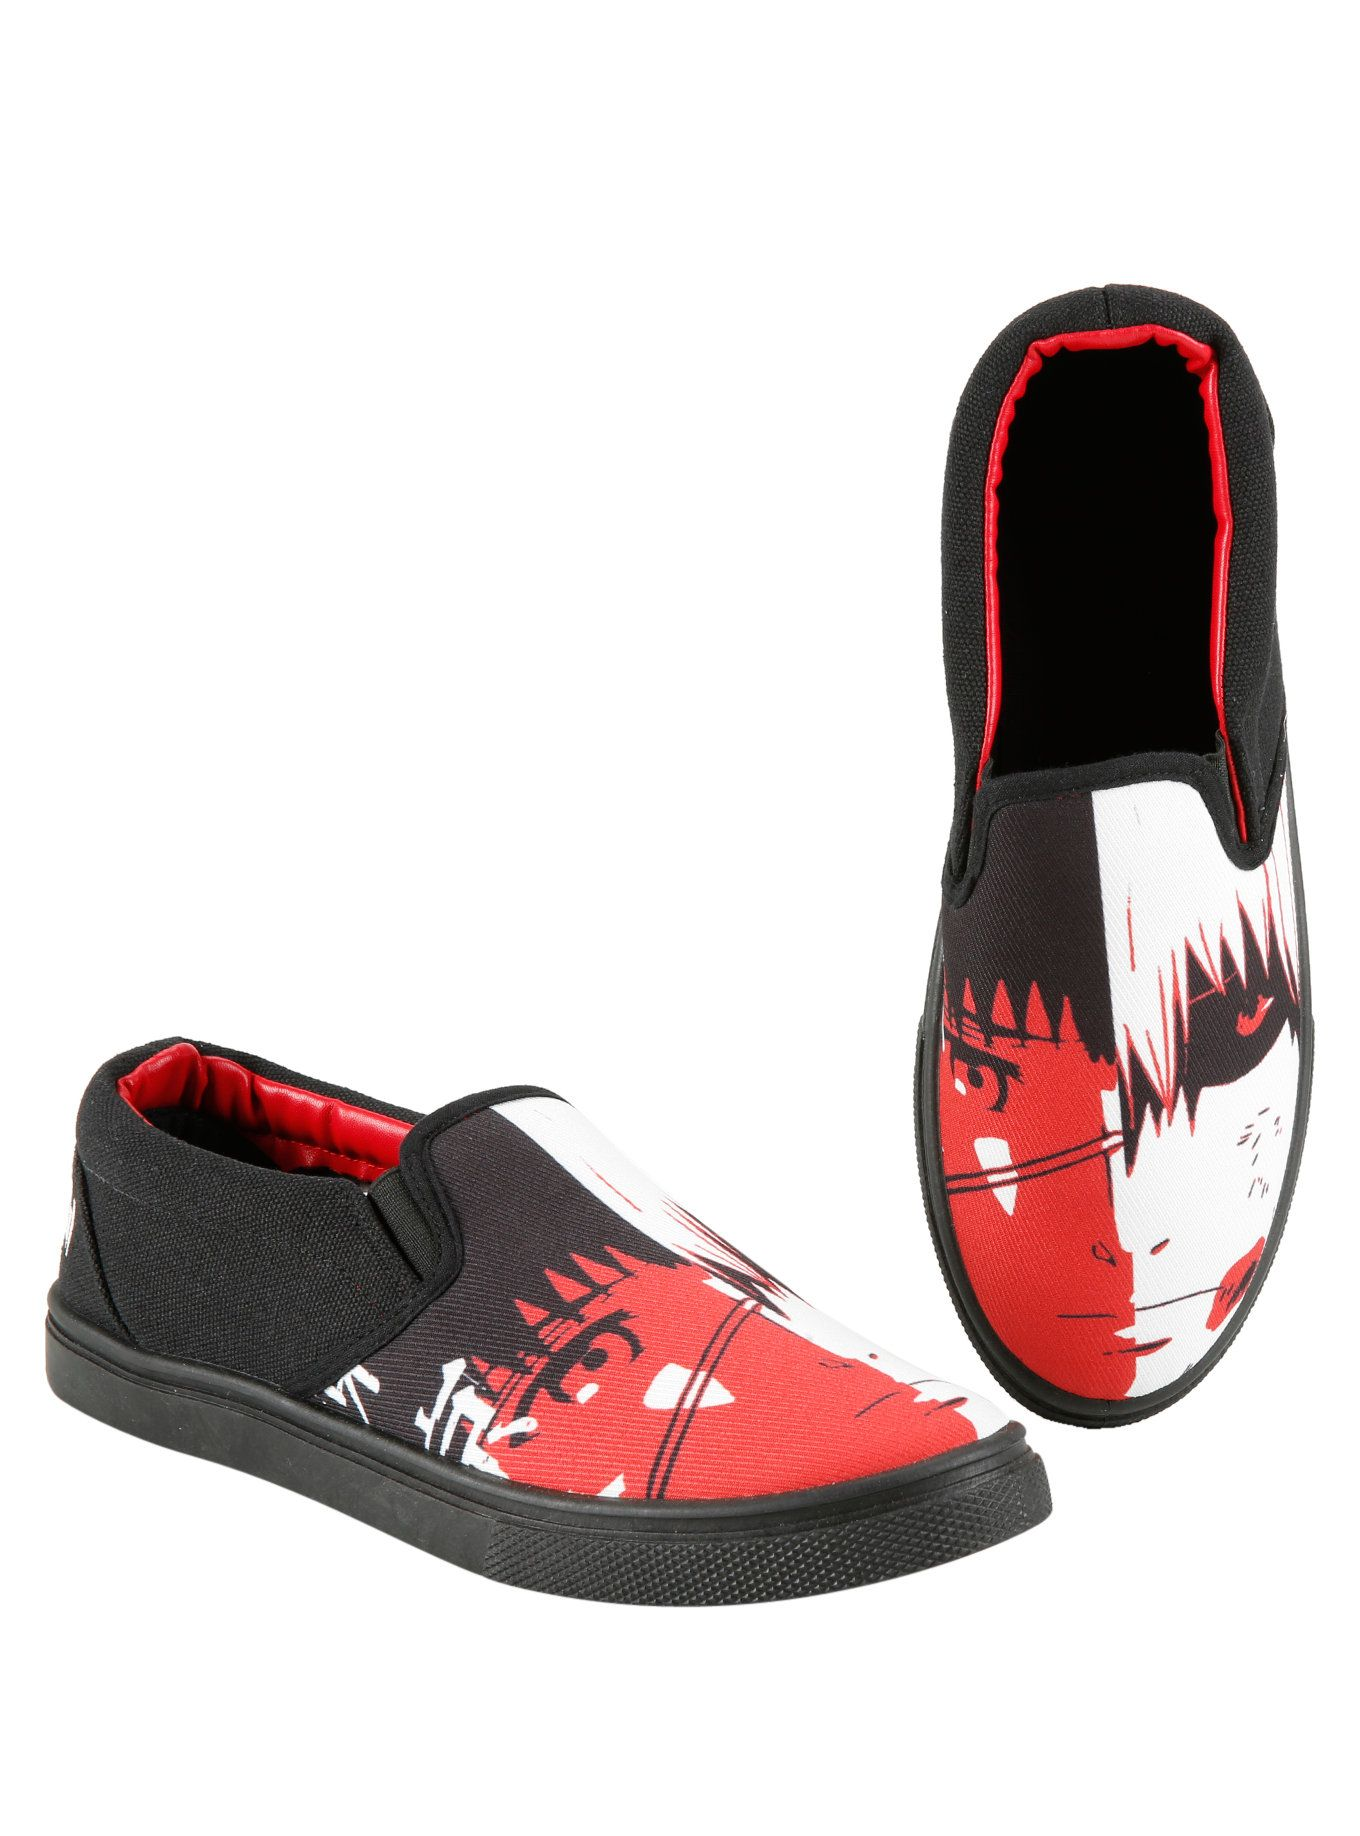 Black slip-on sneakers from Tokyo Ghoul with red, white and black images of Ken  Kaneki on the toes. Man-made materials Imported Listed in men's sizes